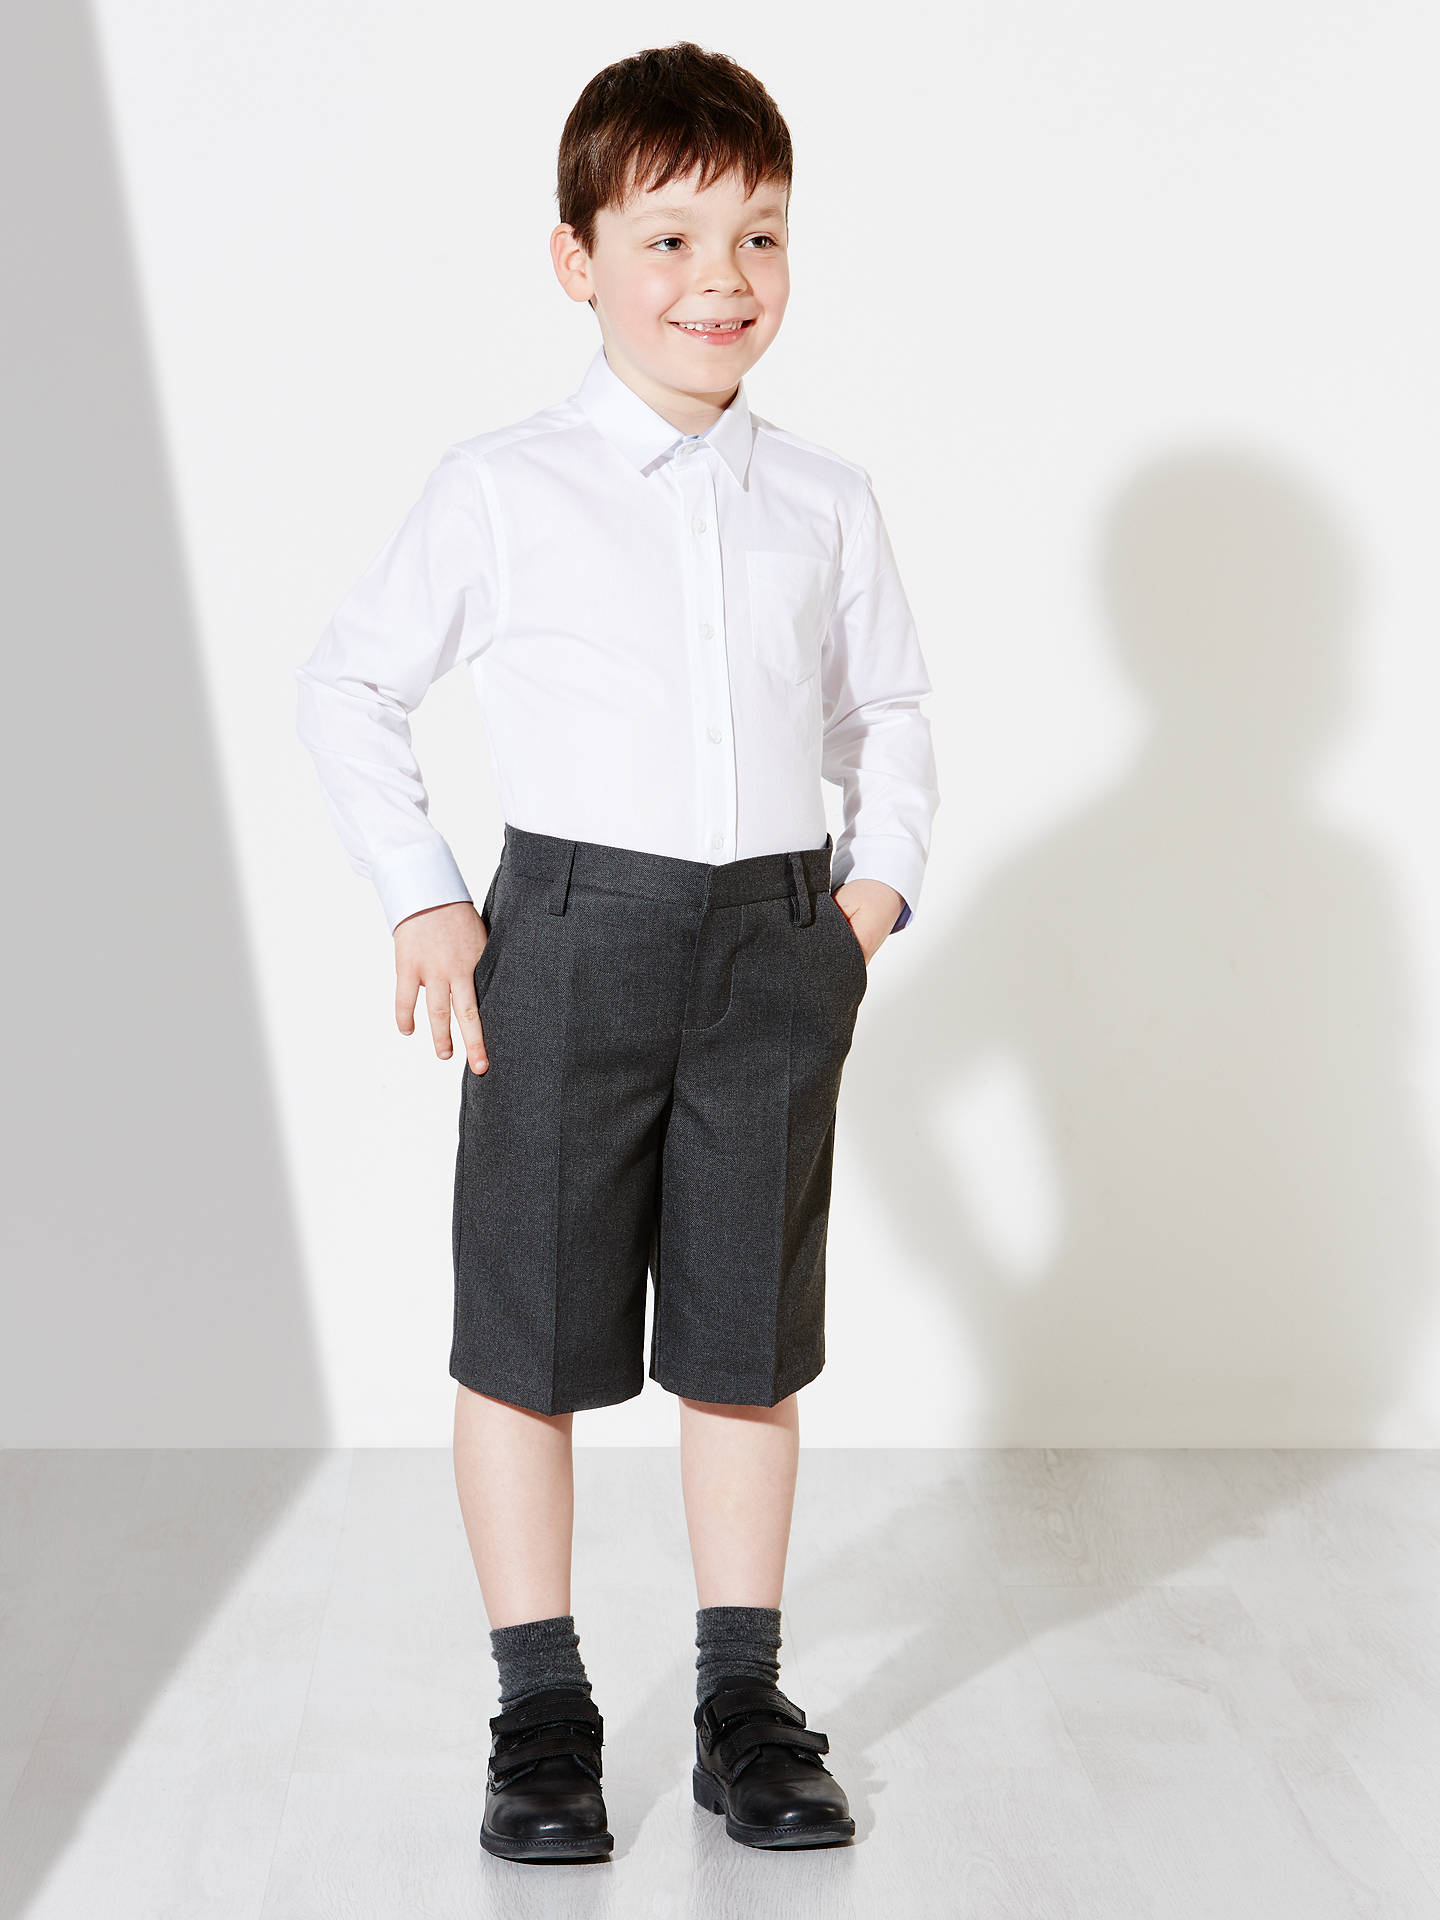 Buy John Lewis & Partners Boys' Bermuda Length School Shorts, Grey, 12 years Online at johnlewis.com